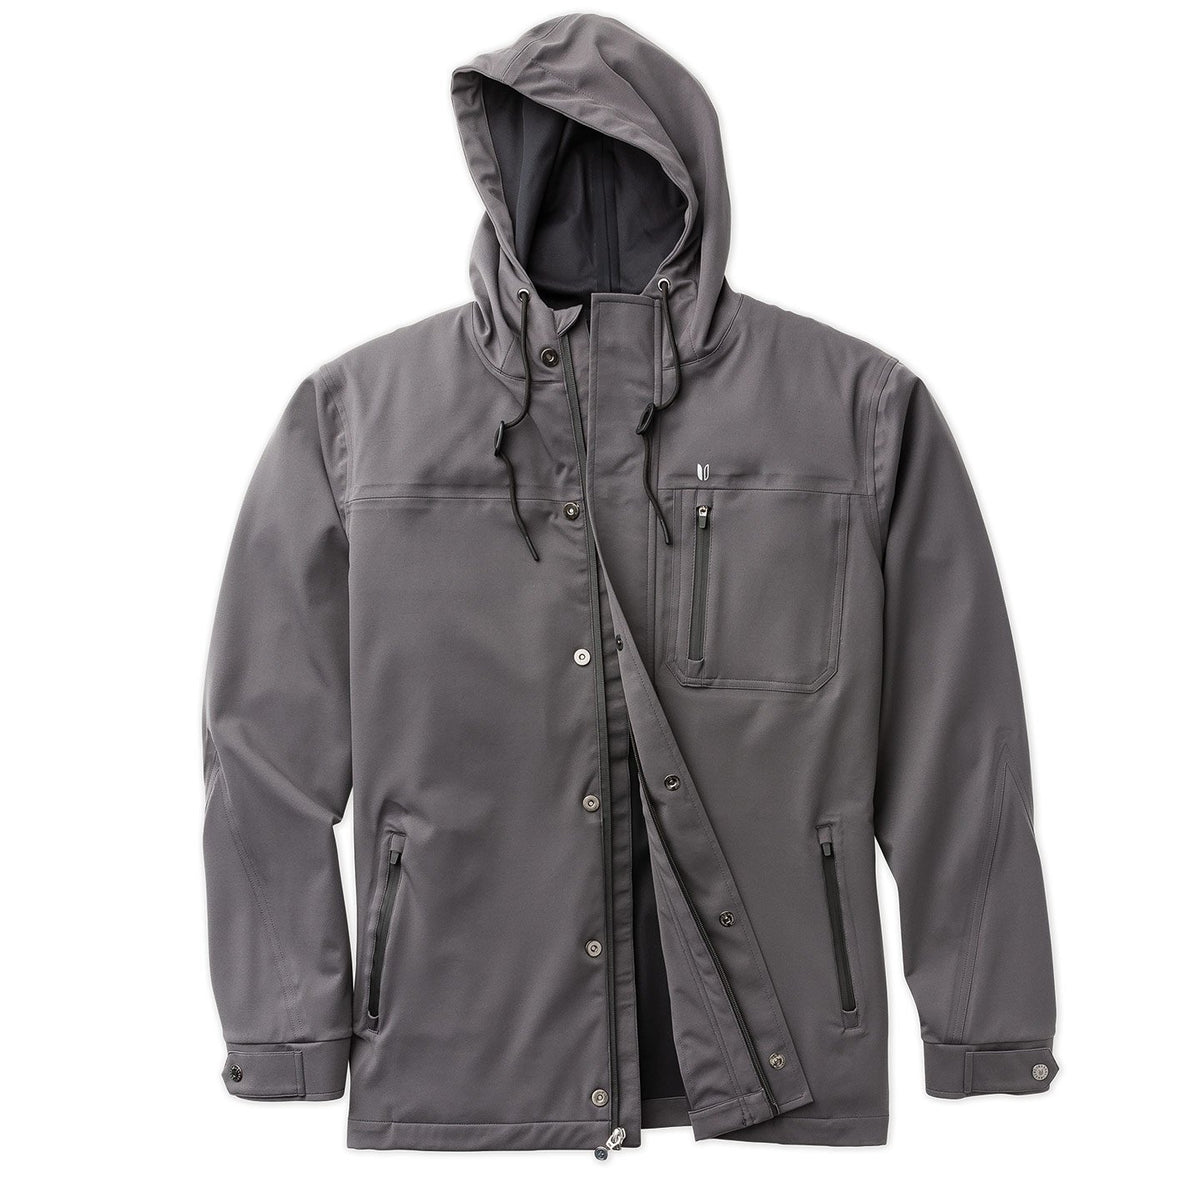 Polartec Breathable Rain Jacket